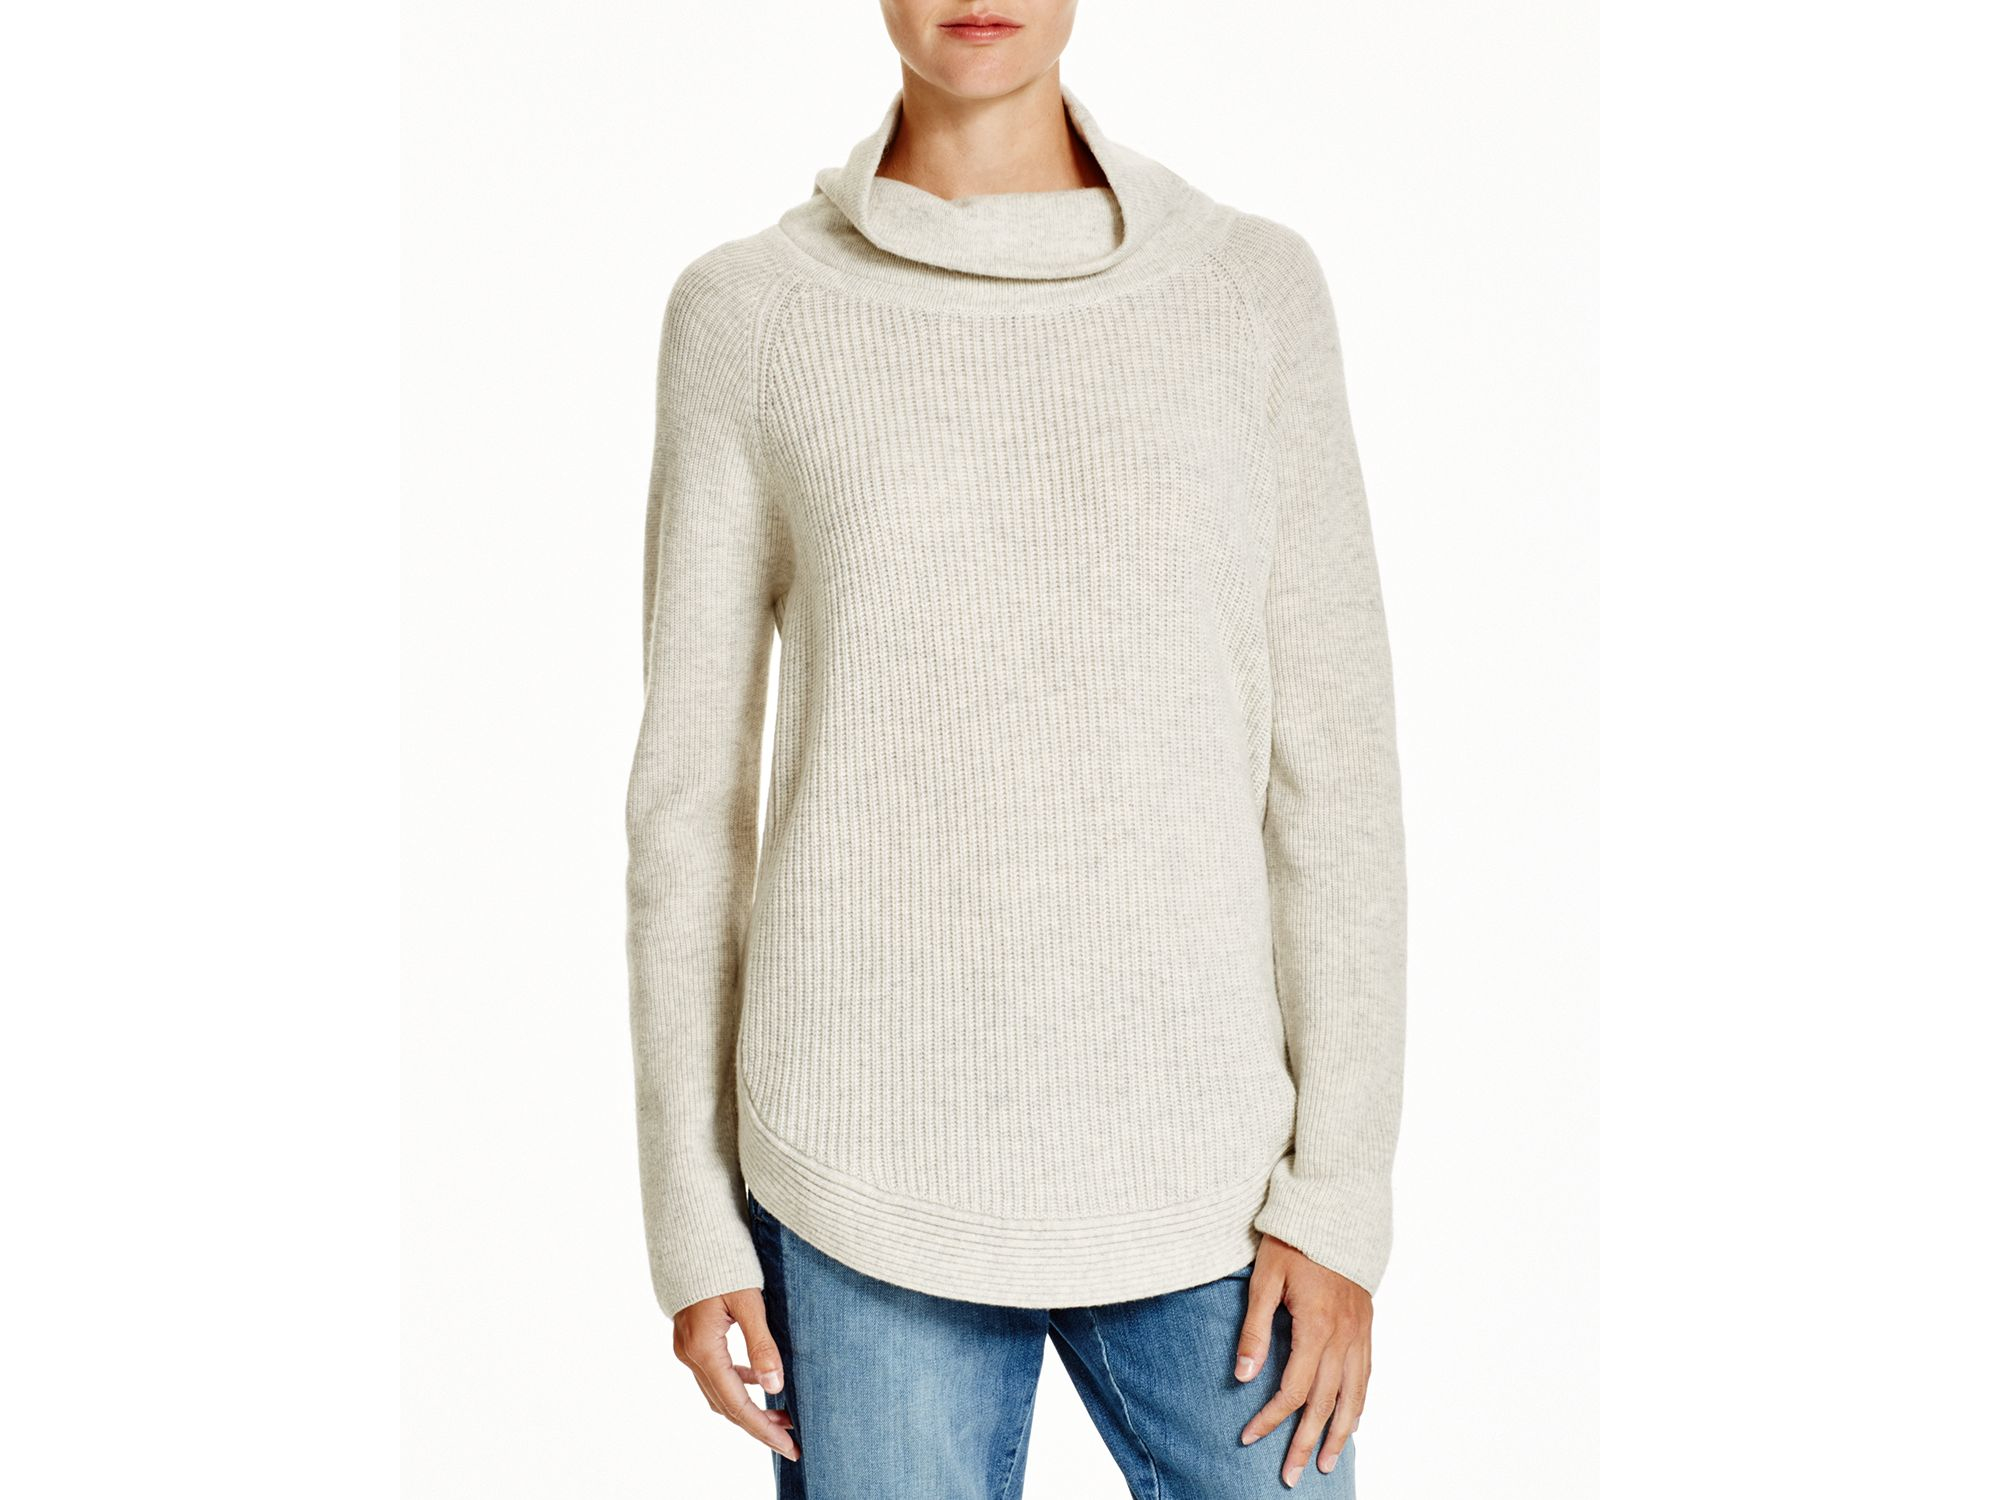 c28b4f43dab77 Lyst - Vince Side Zip Cowl Neck Sweater in Gray